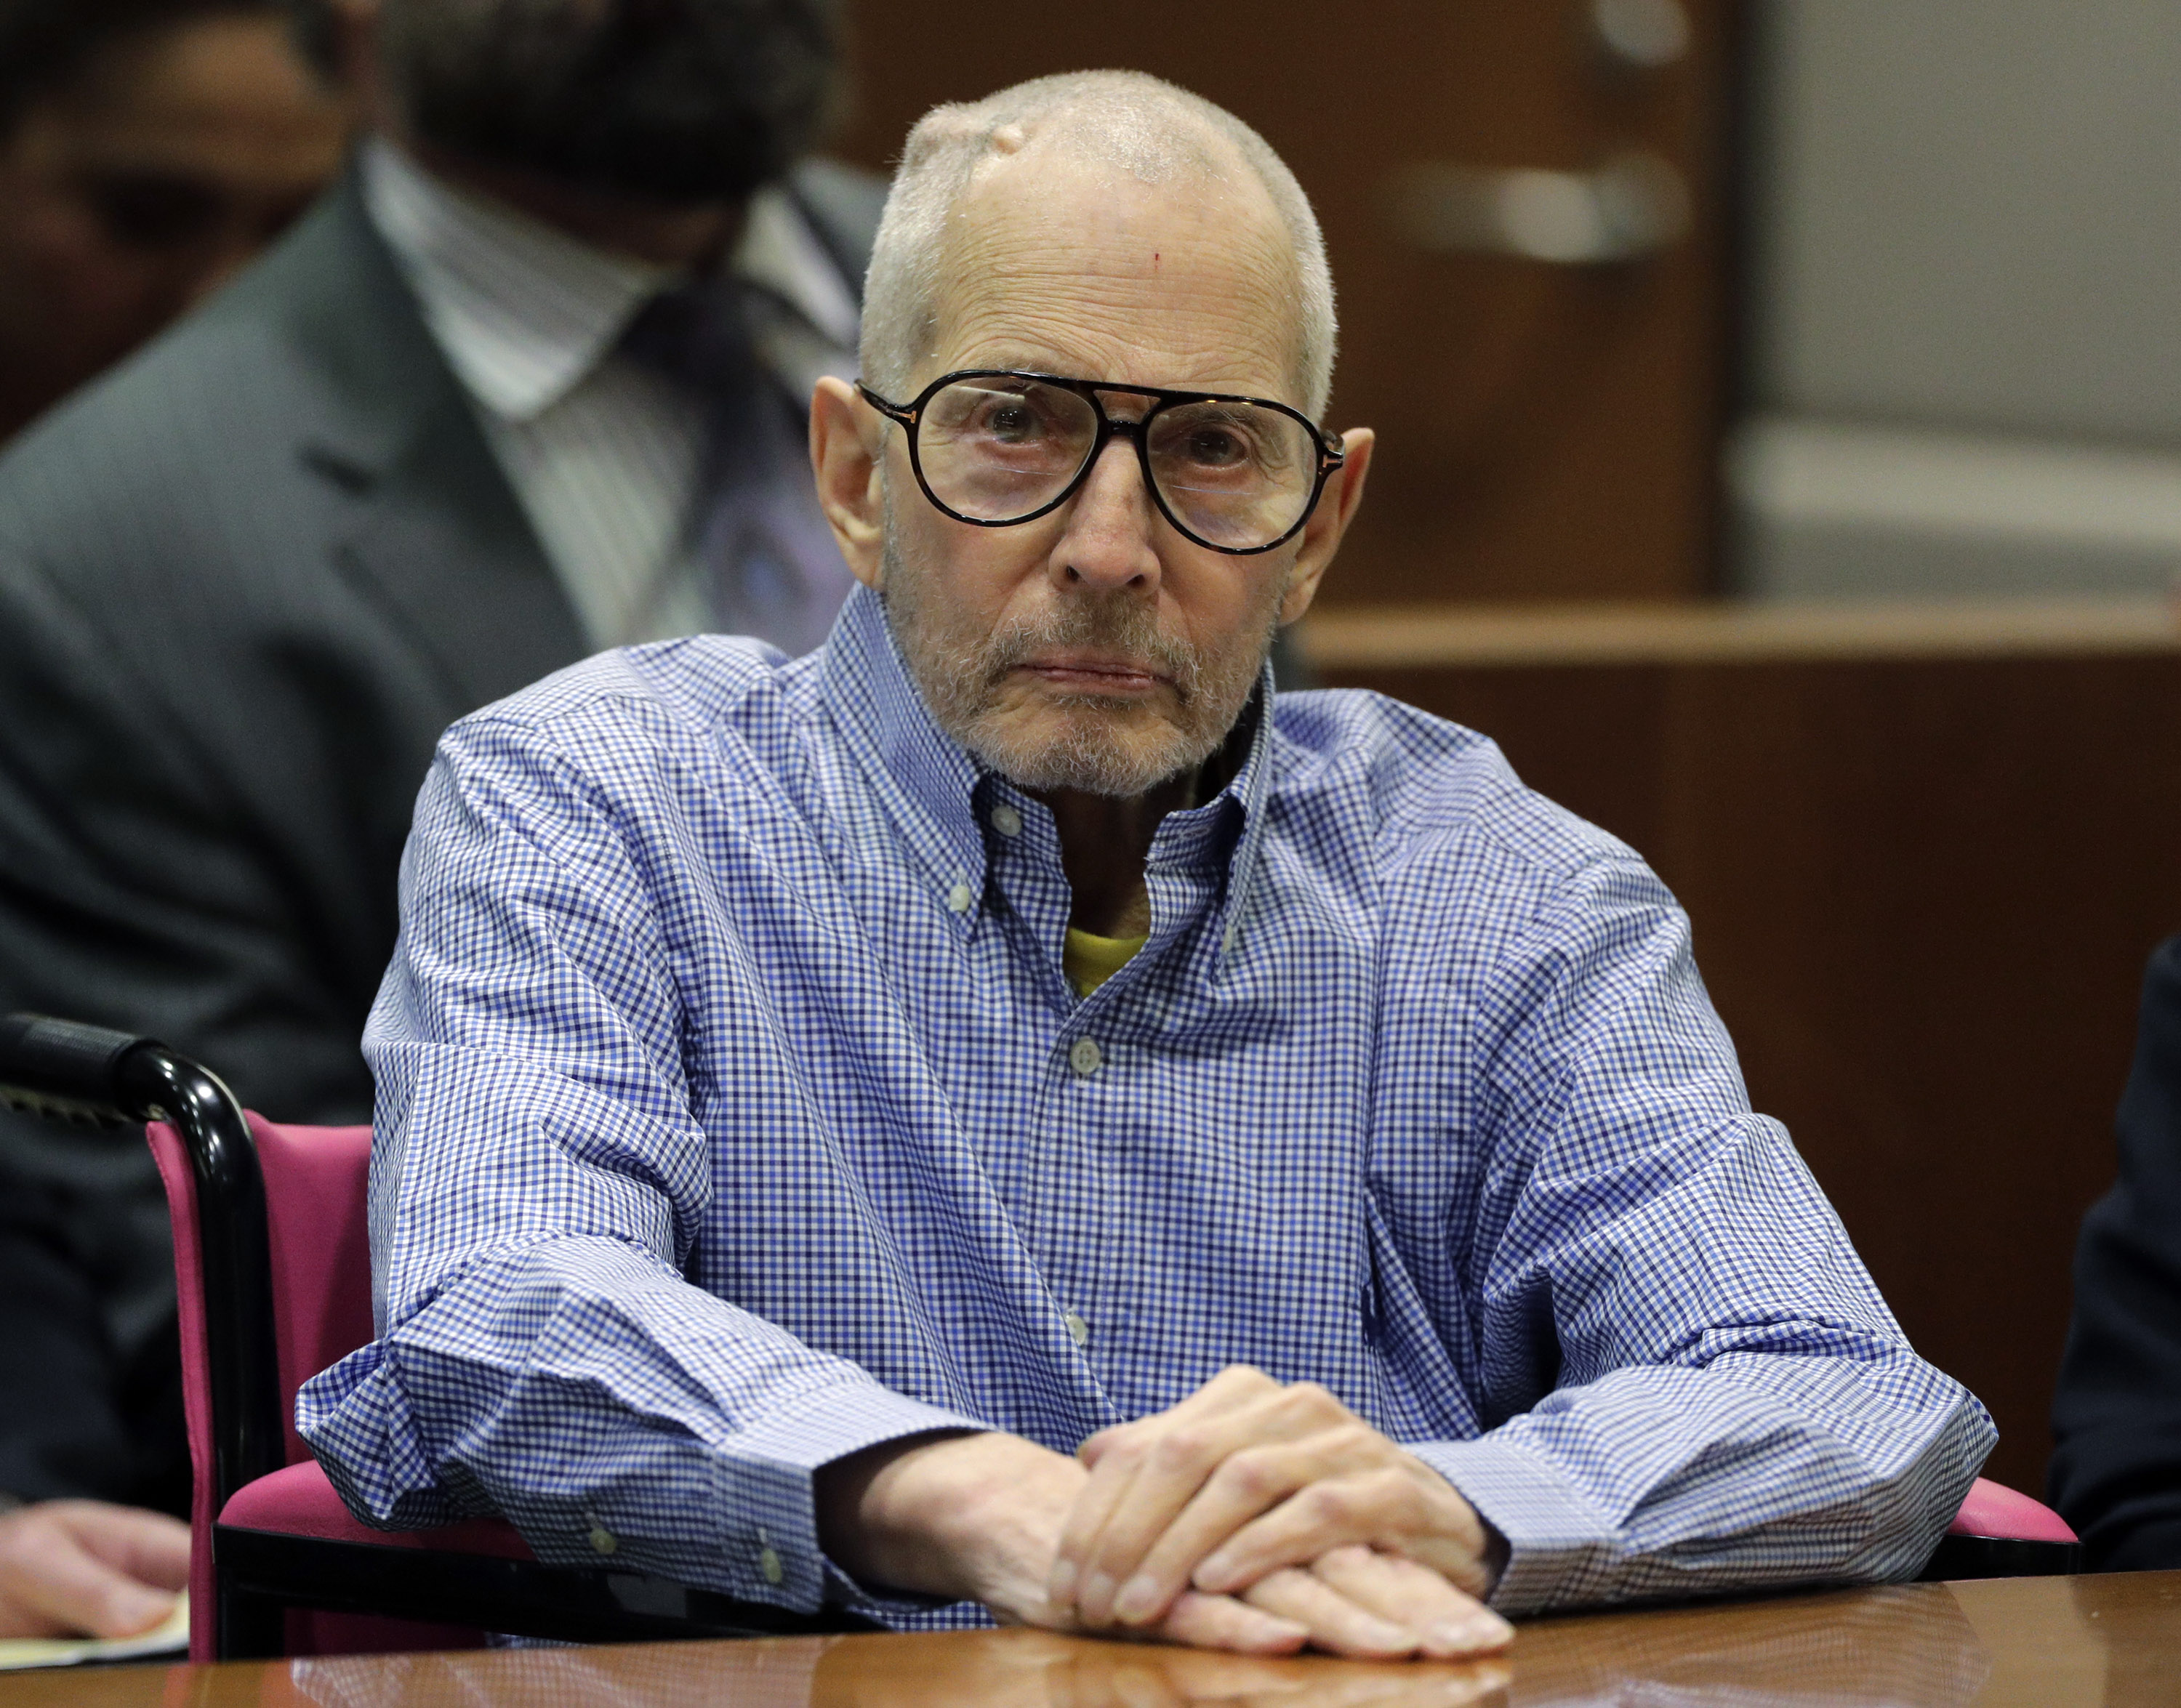 """Robert Durst, Accused Murderer Featured In """"The Jinx,"""" Cleared In Another Legal Battle"""